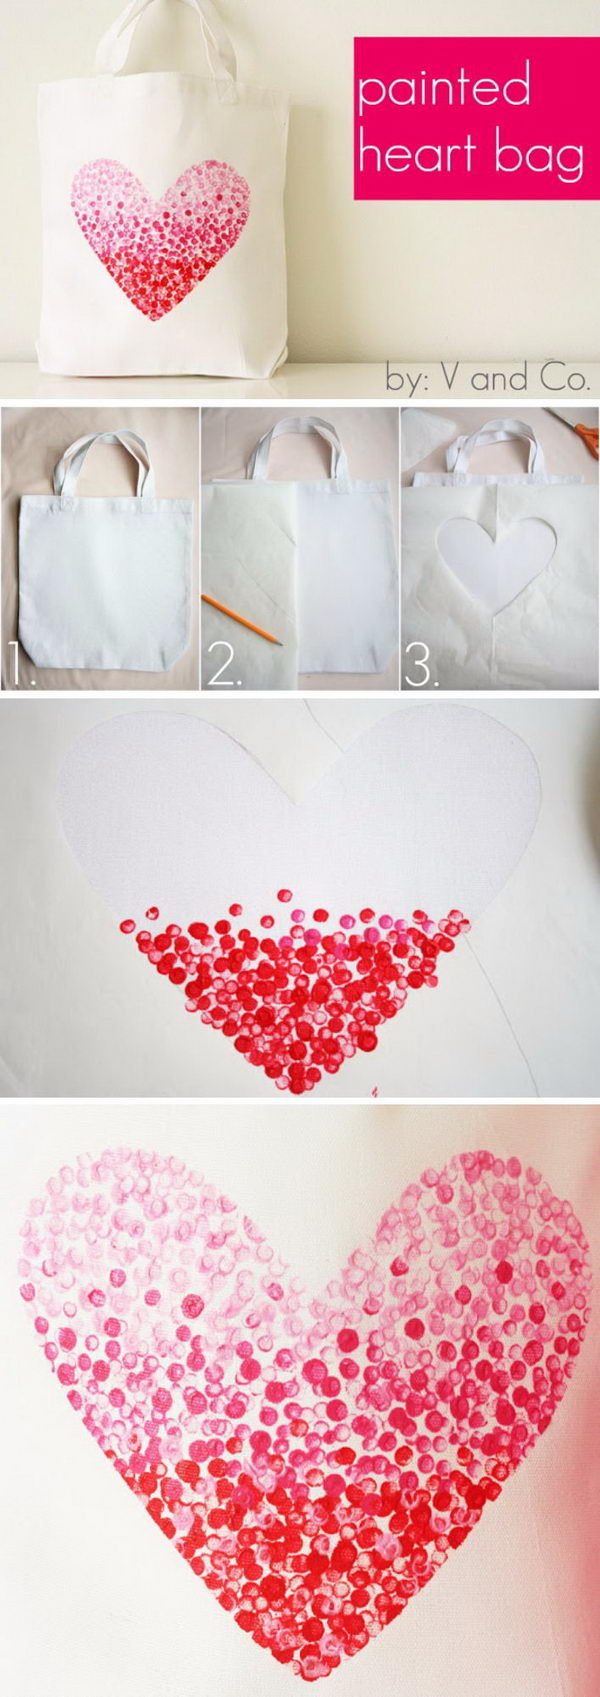 Painted Heart Bag.